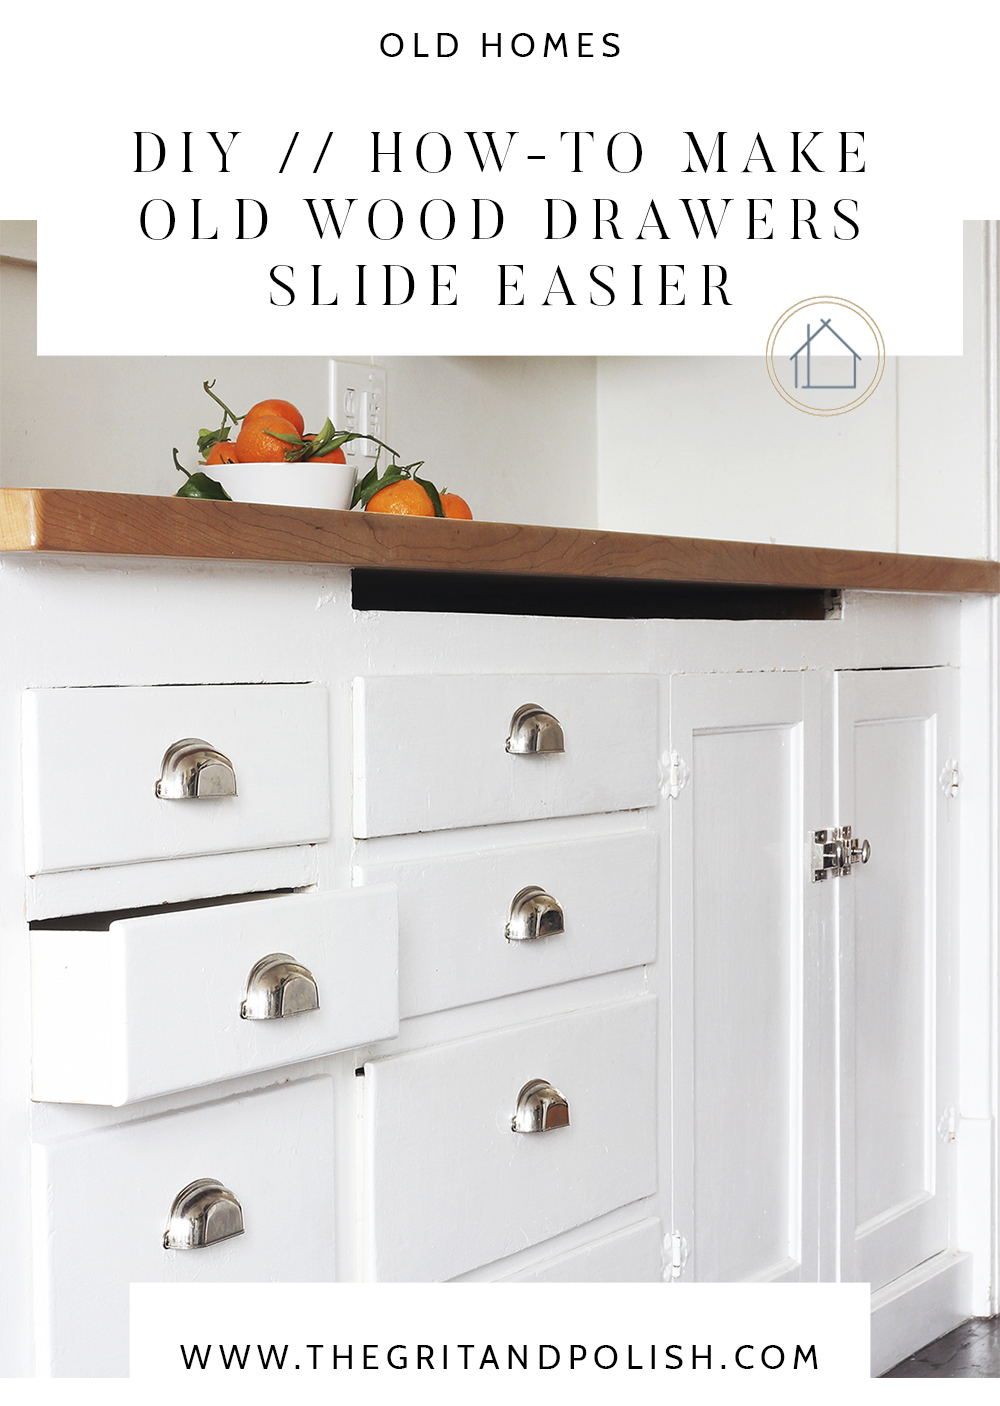 The Grit and Polish - Bryant DIY How to Make Wood Drawers Slide Easier TEXT CROP.jpg